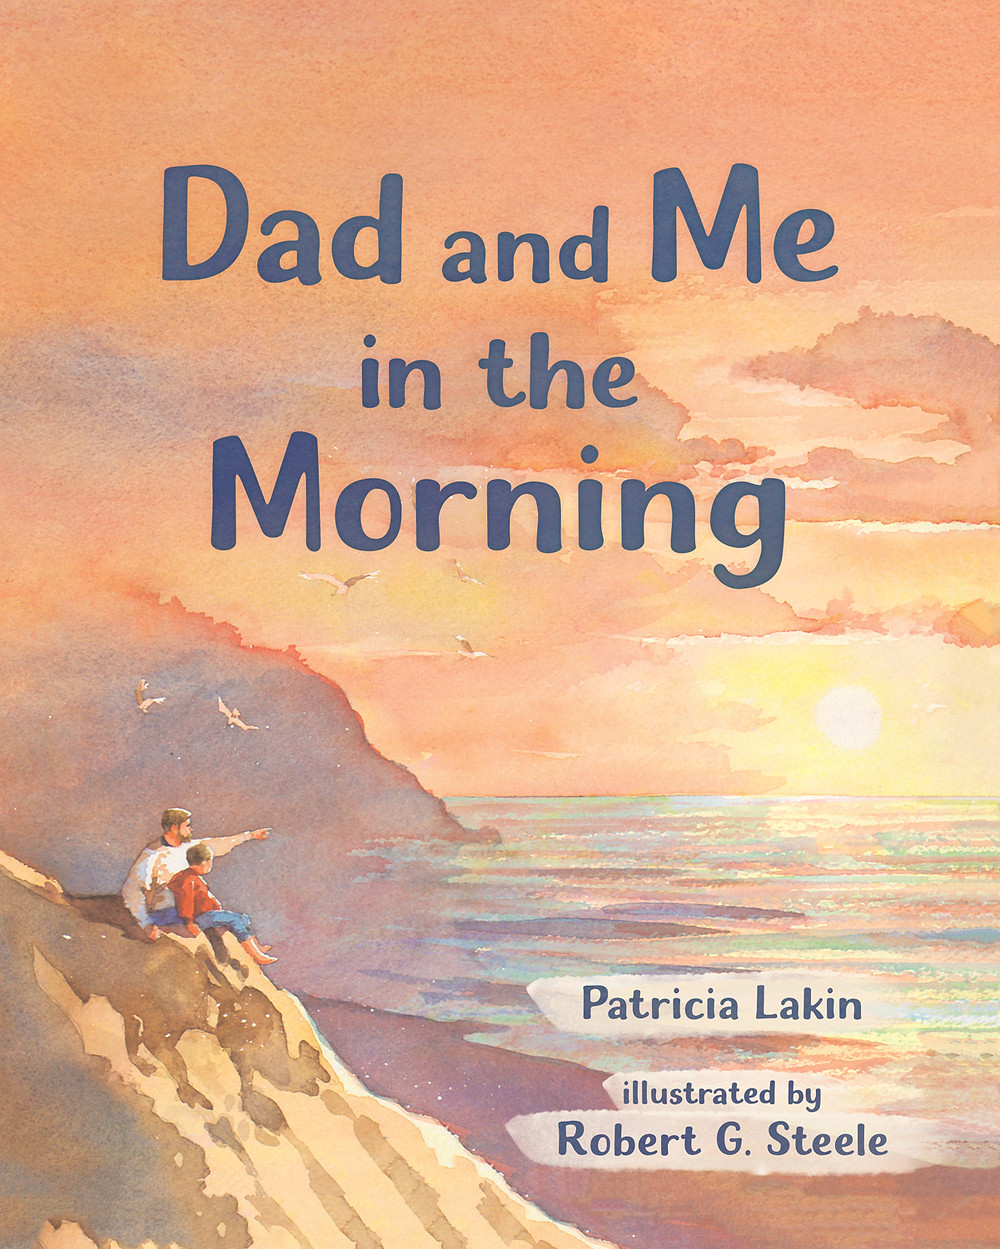 Cover of Dad and Me in the Morning written by Patricia Larkin and illustrated by Robert G. Steele.